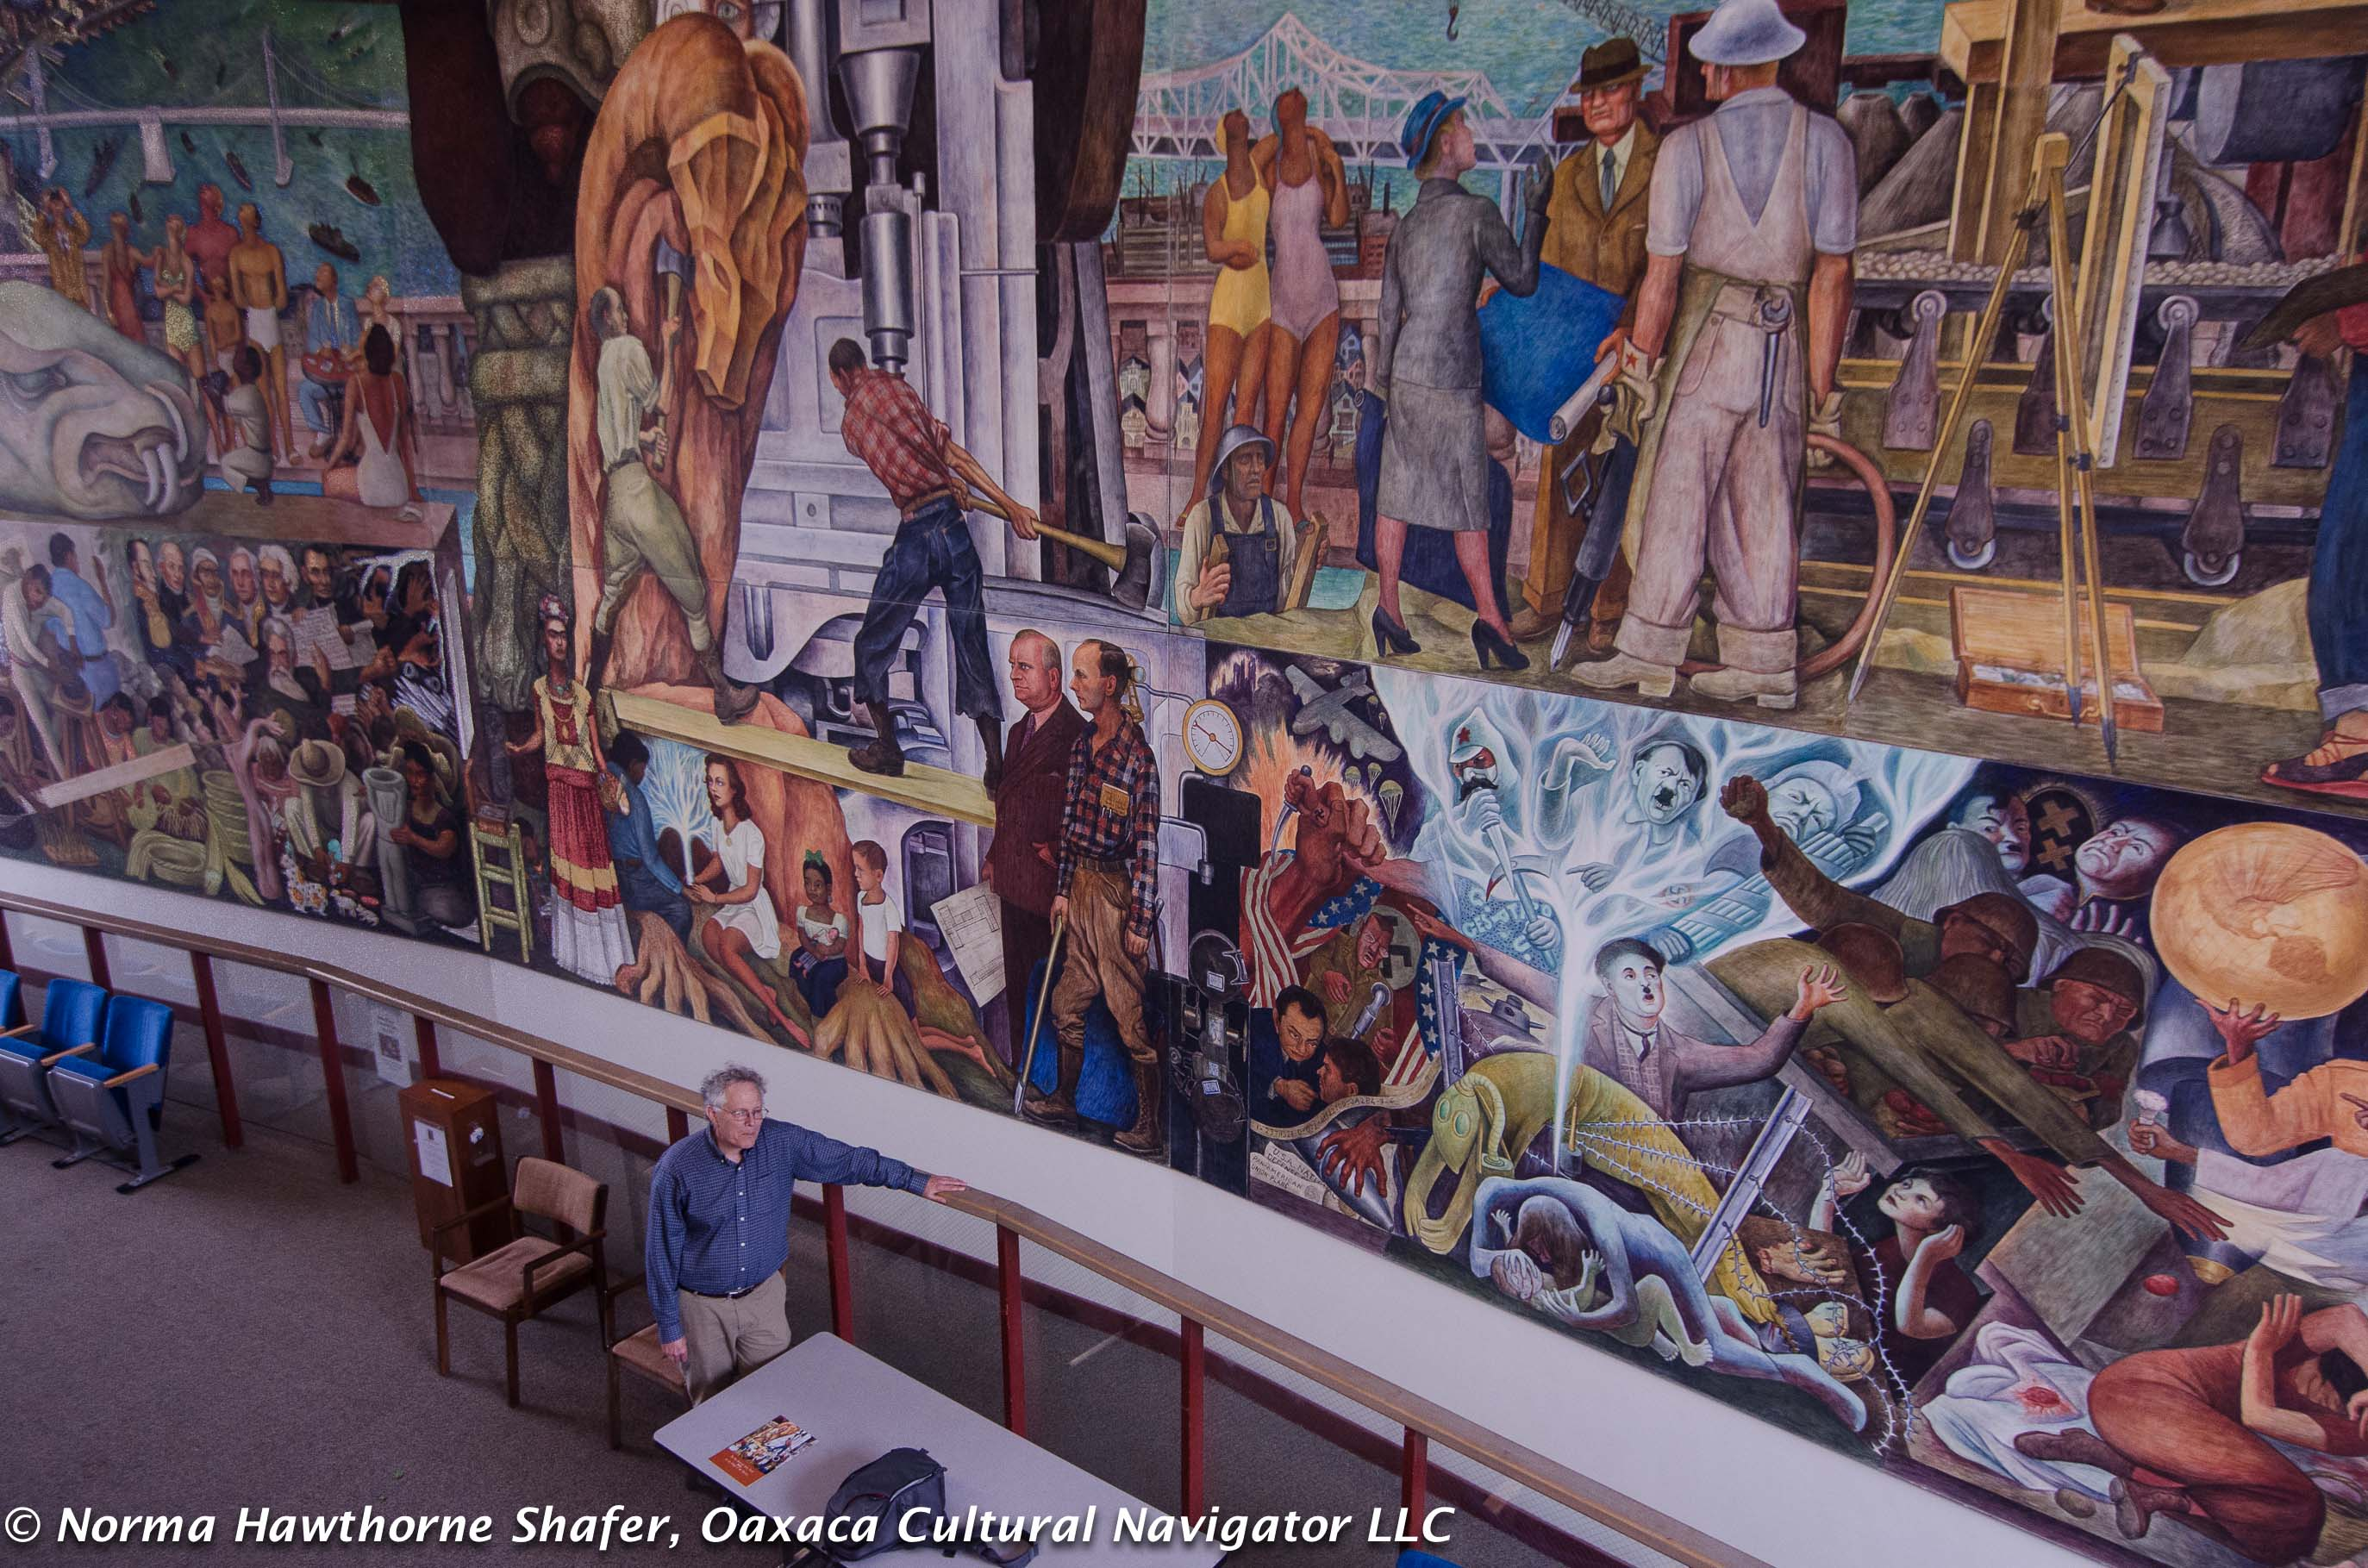 Diego rivera murals in san francisco critical guide for for Diego rivera san francisco mural